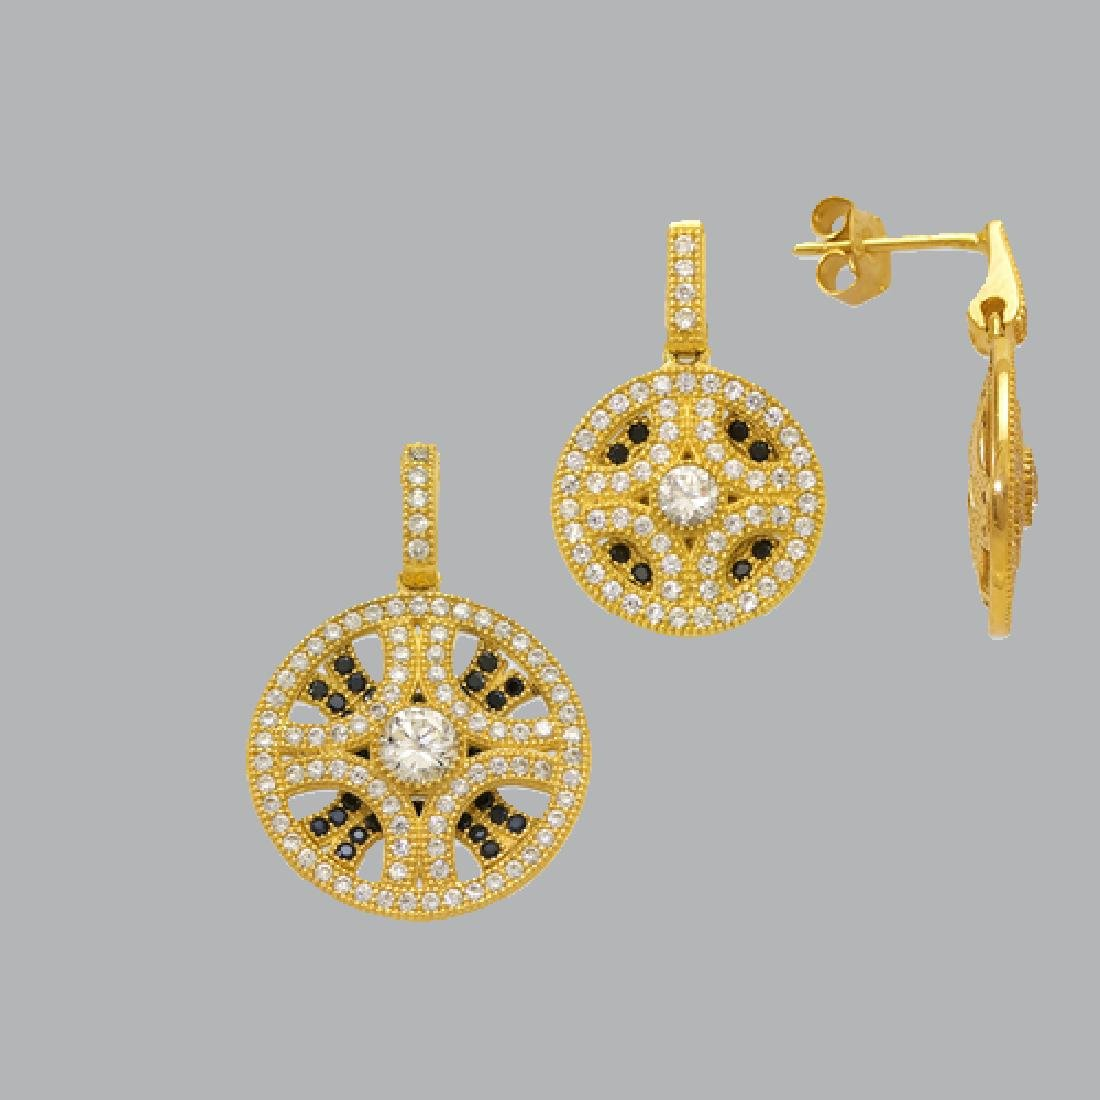 NEW 14K YELLOW GOLD DISC EARRING PENDANT SET - 2